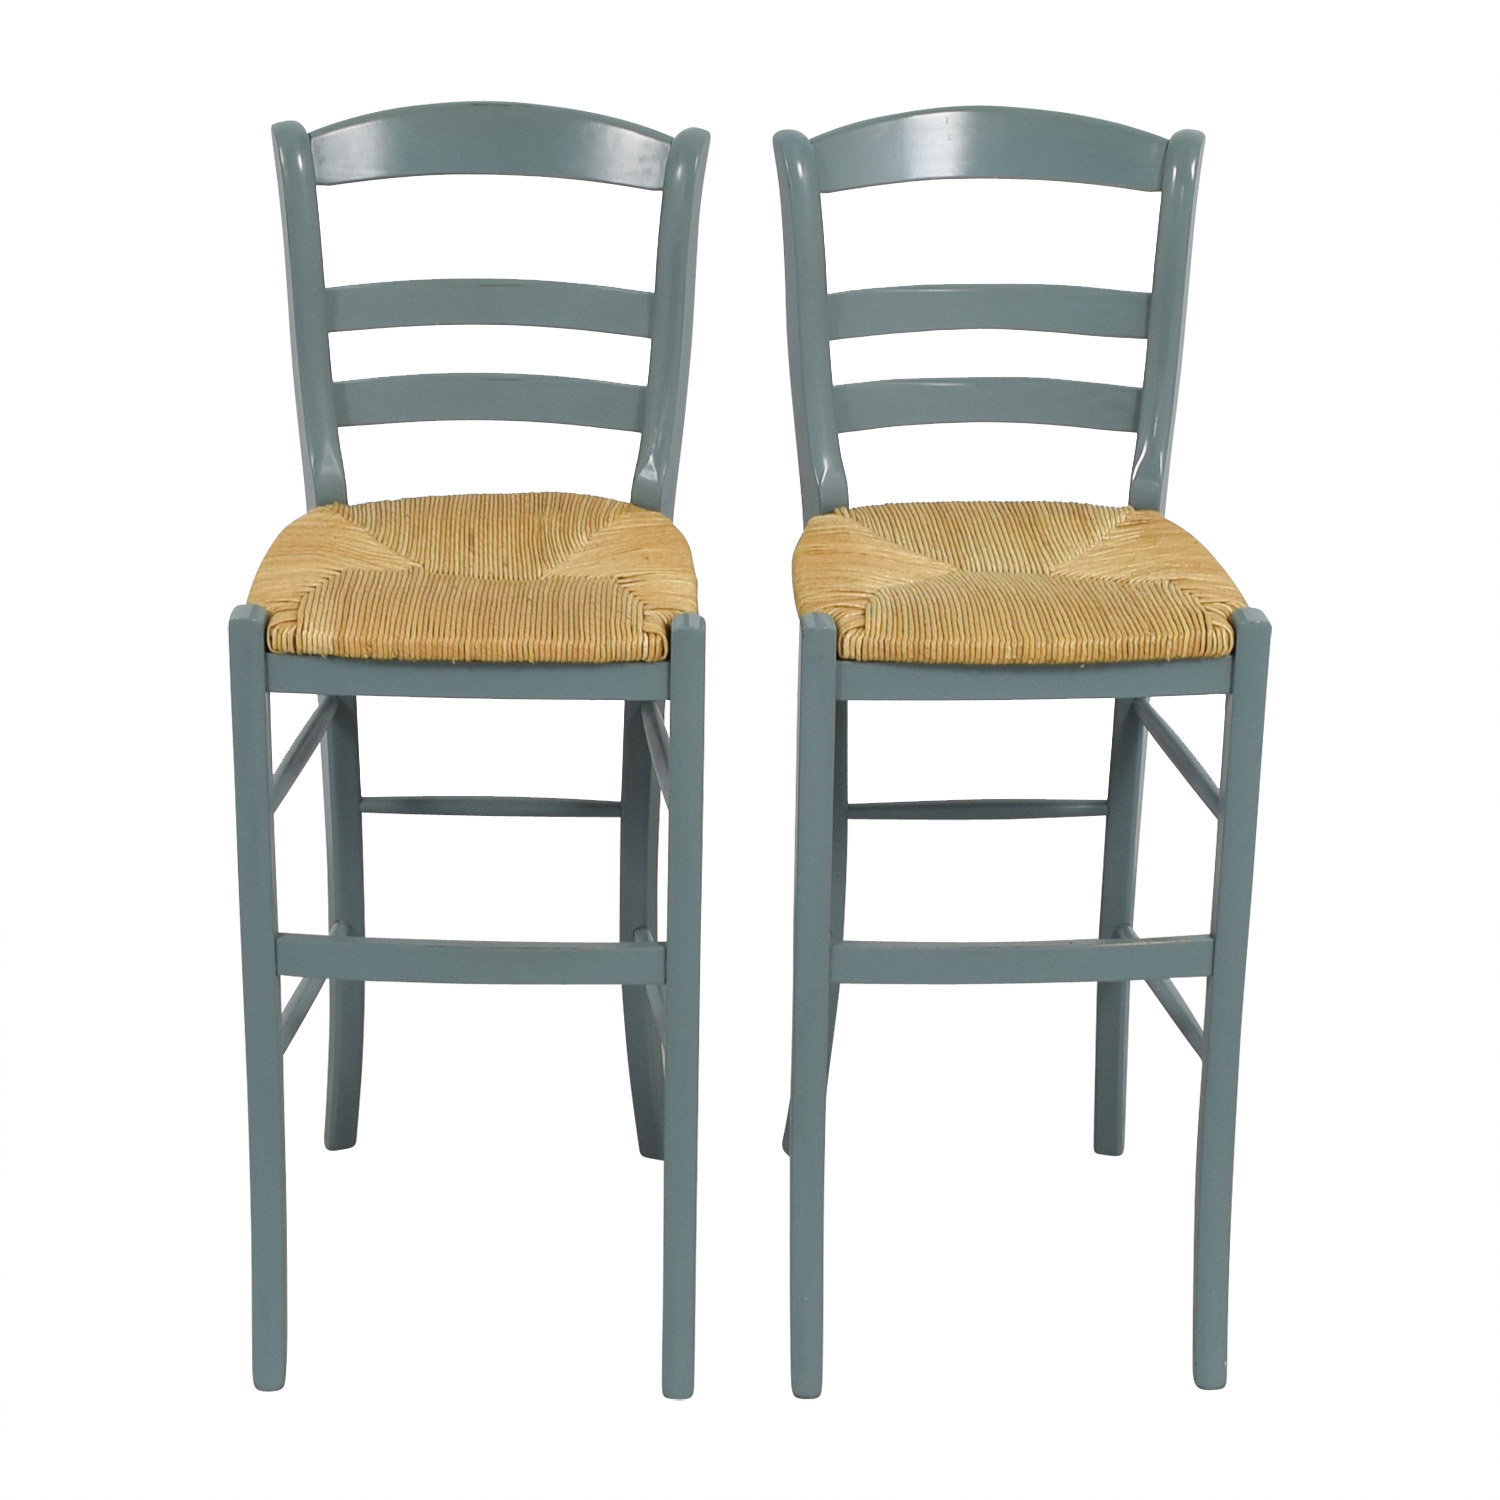 OFF Pottery Barn Pottery Barn Isabella Wood Bar Stools Chairs